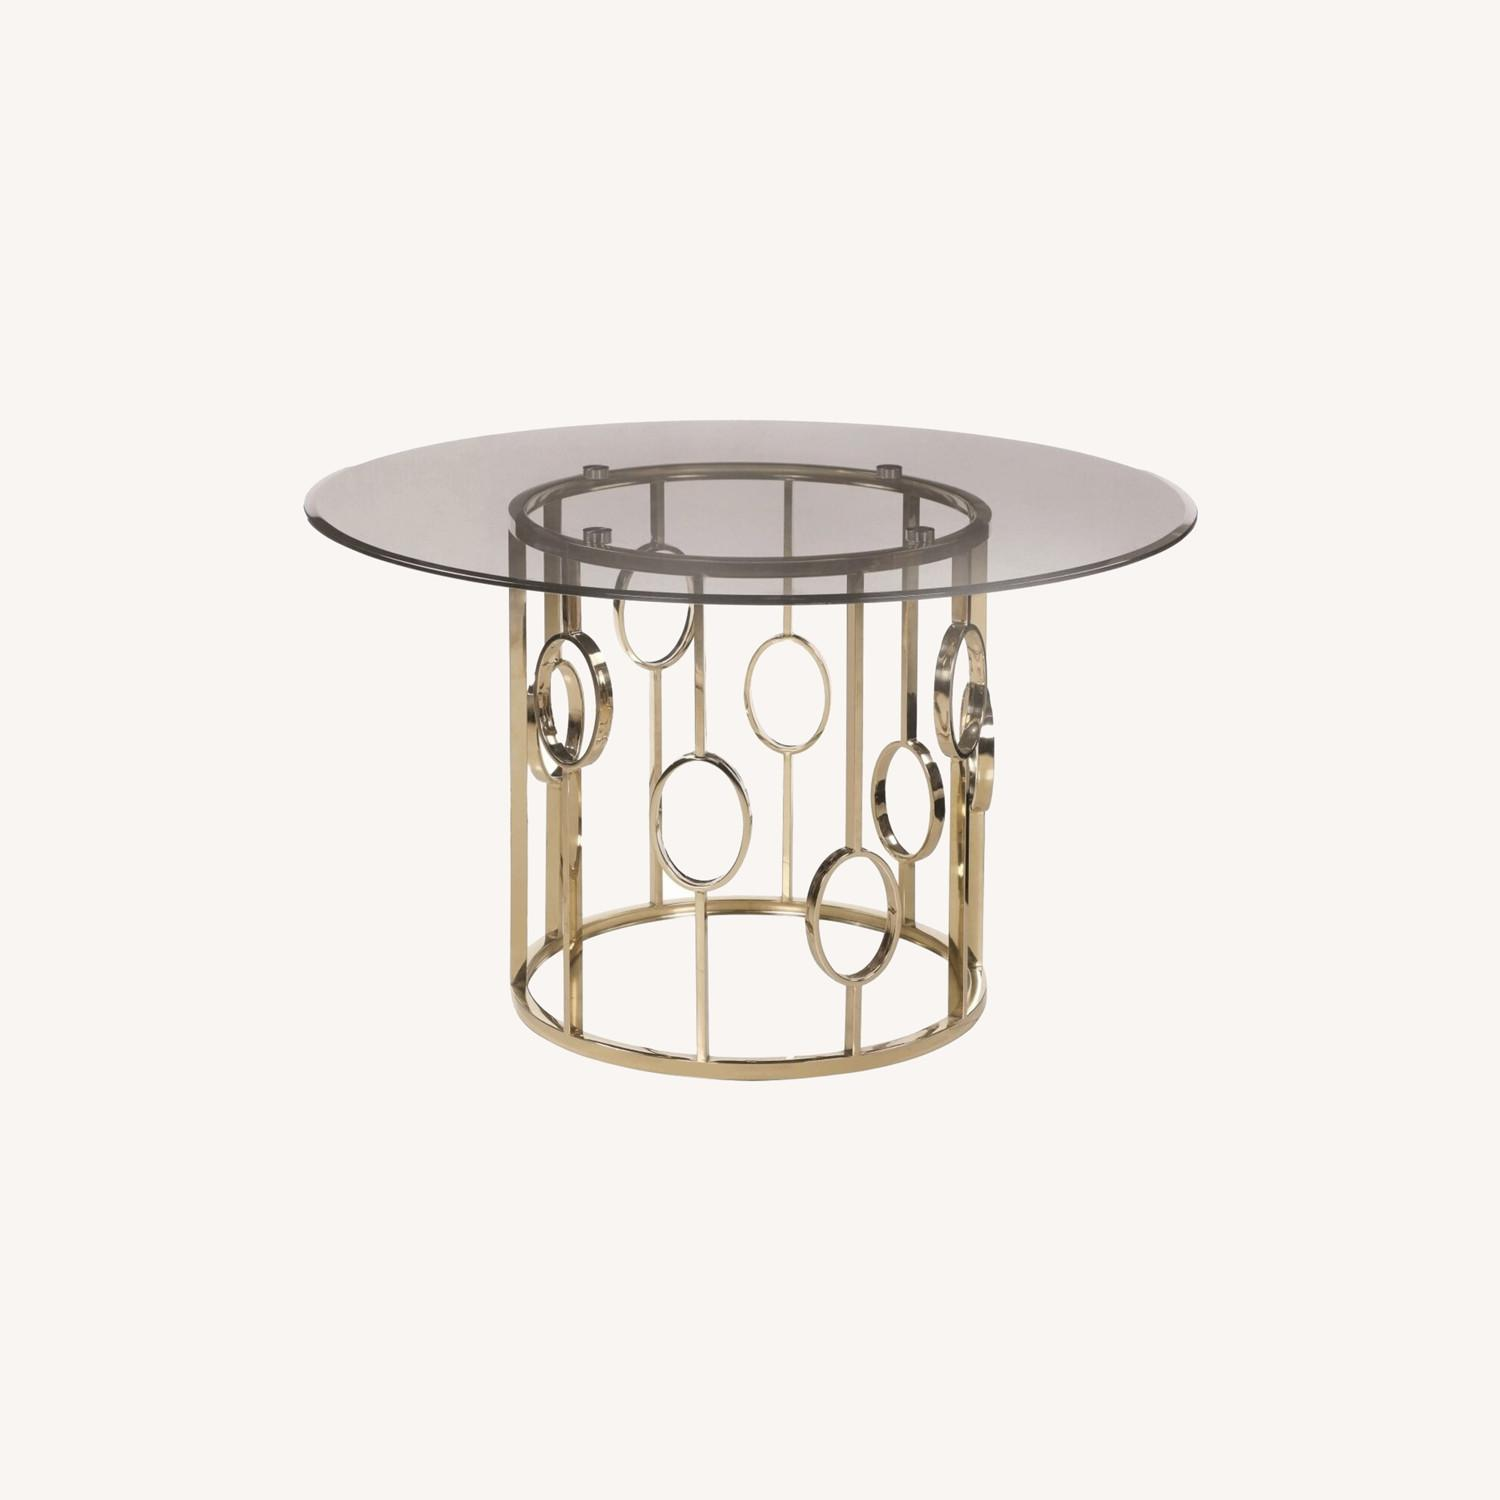 Elegant Round Dining Table In Smoke Glass Top - image-3